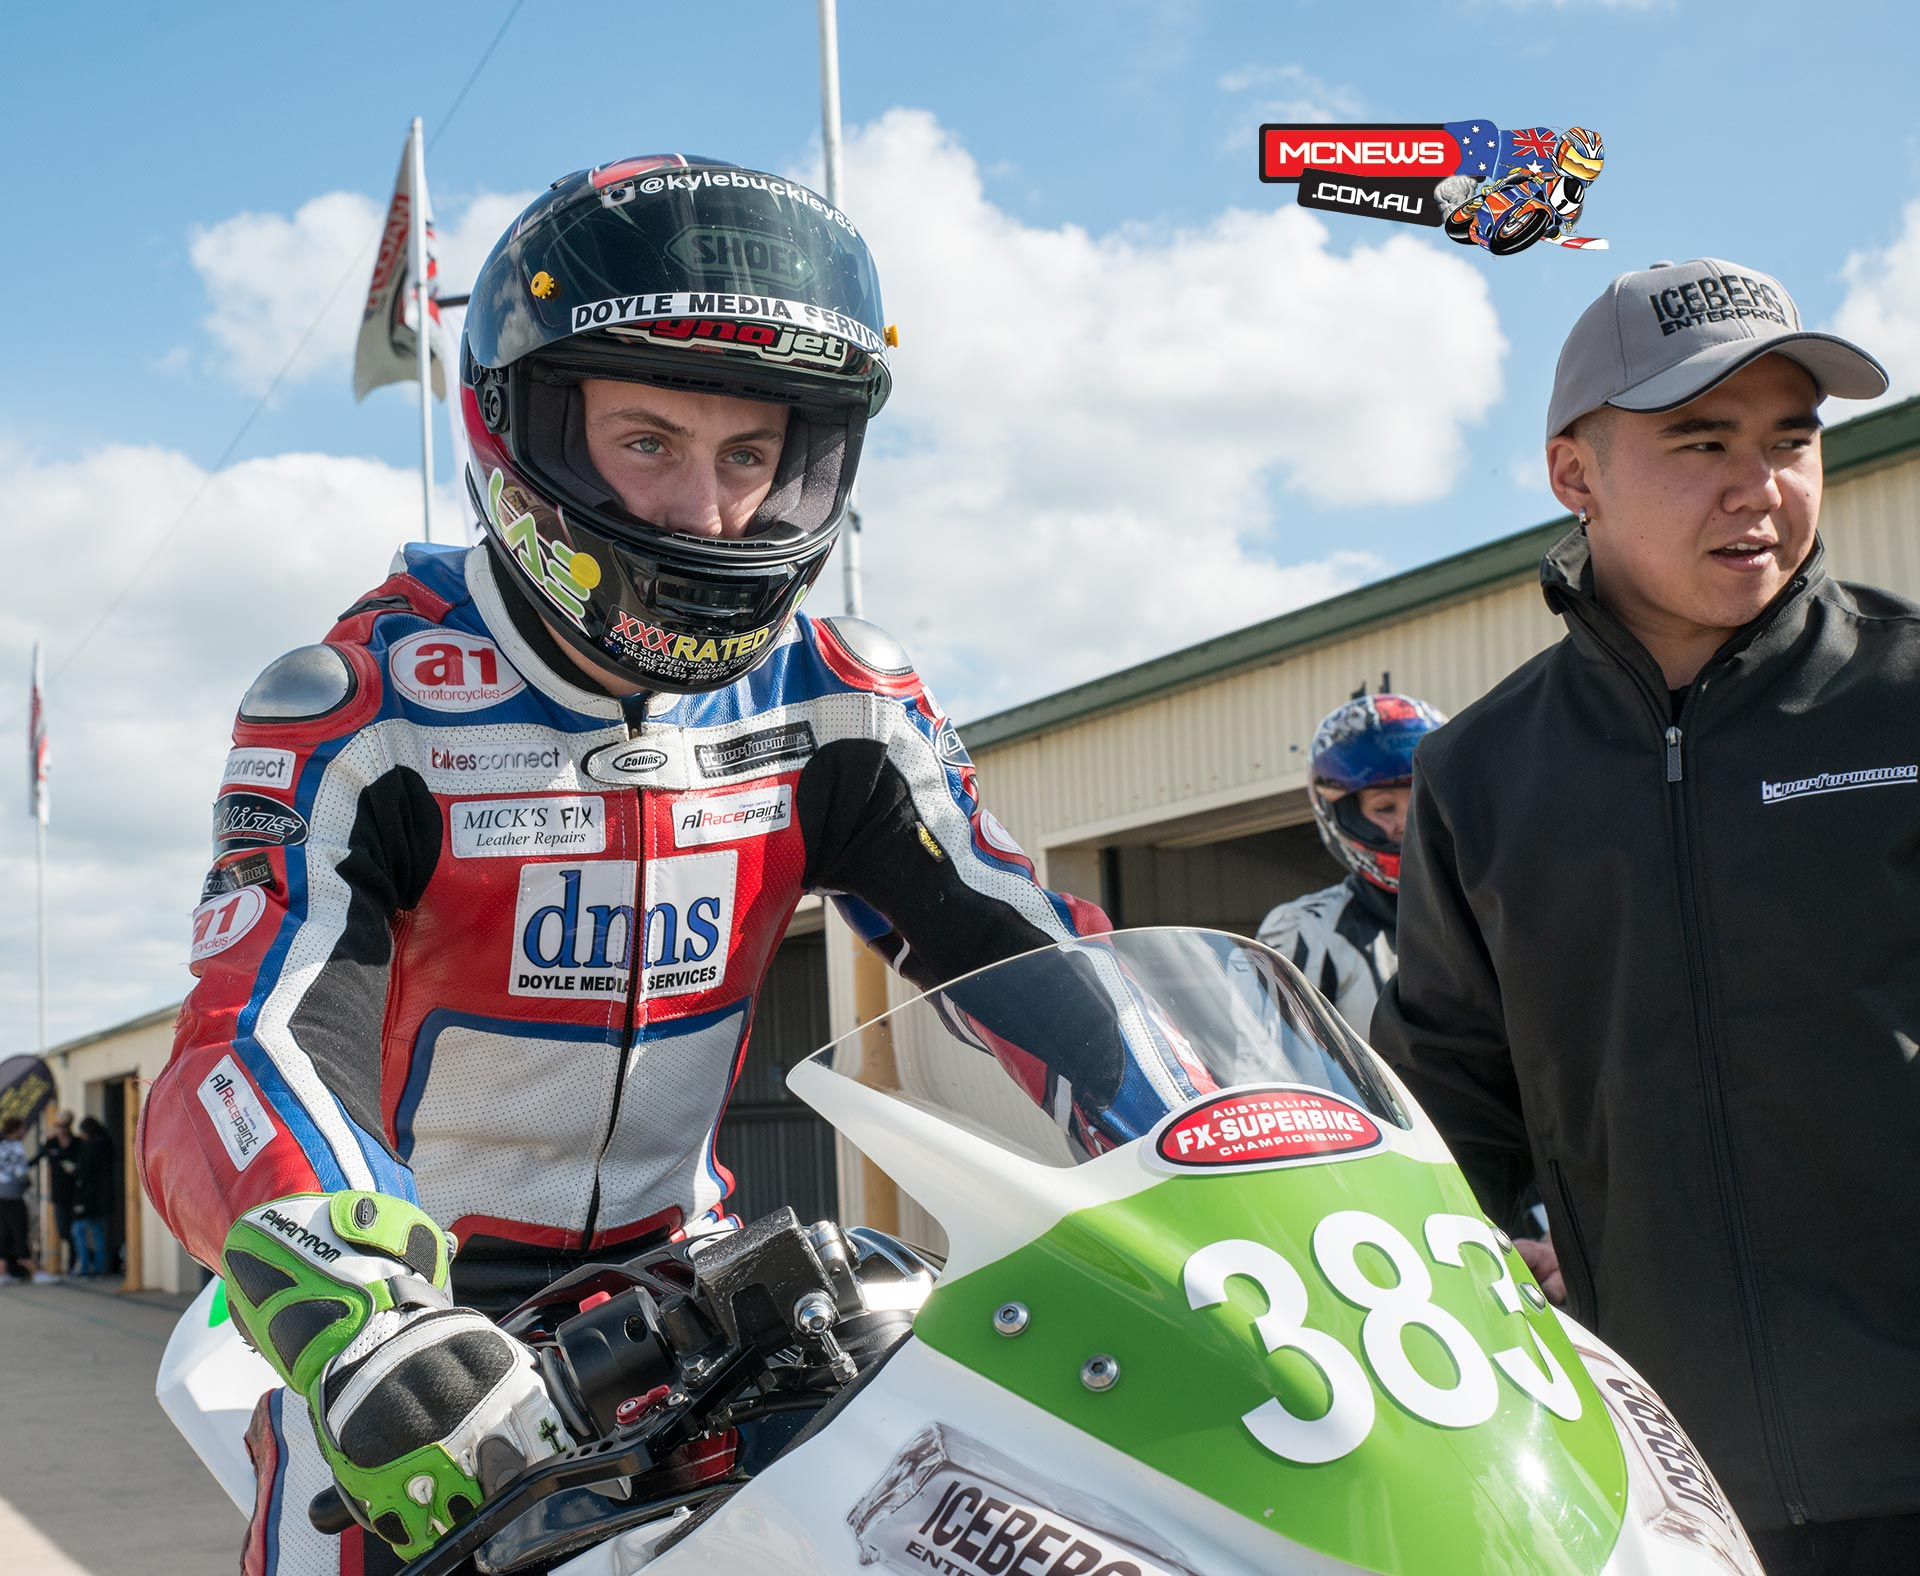 Kyle Buckley is promoted within the BCperformance team to the Supersport ranks in 2015